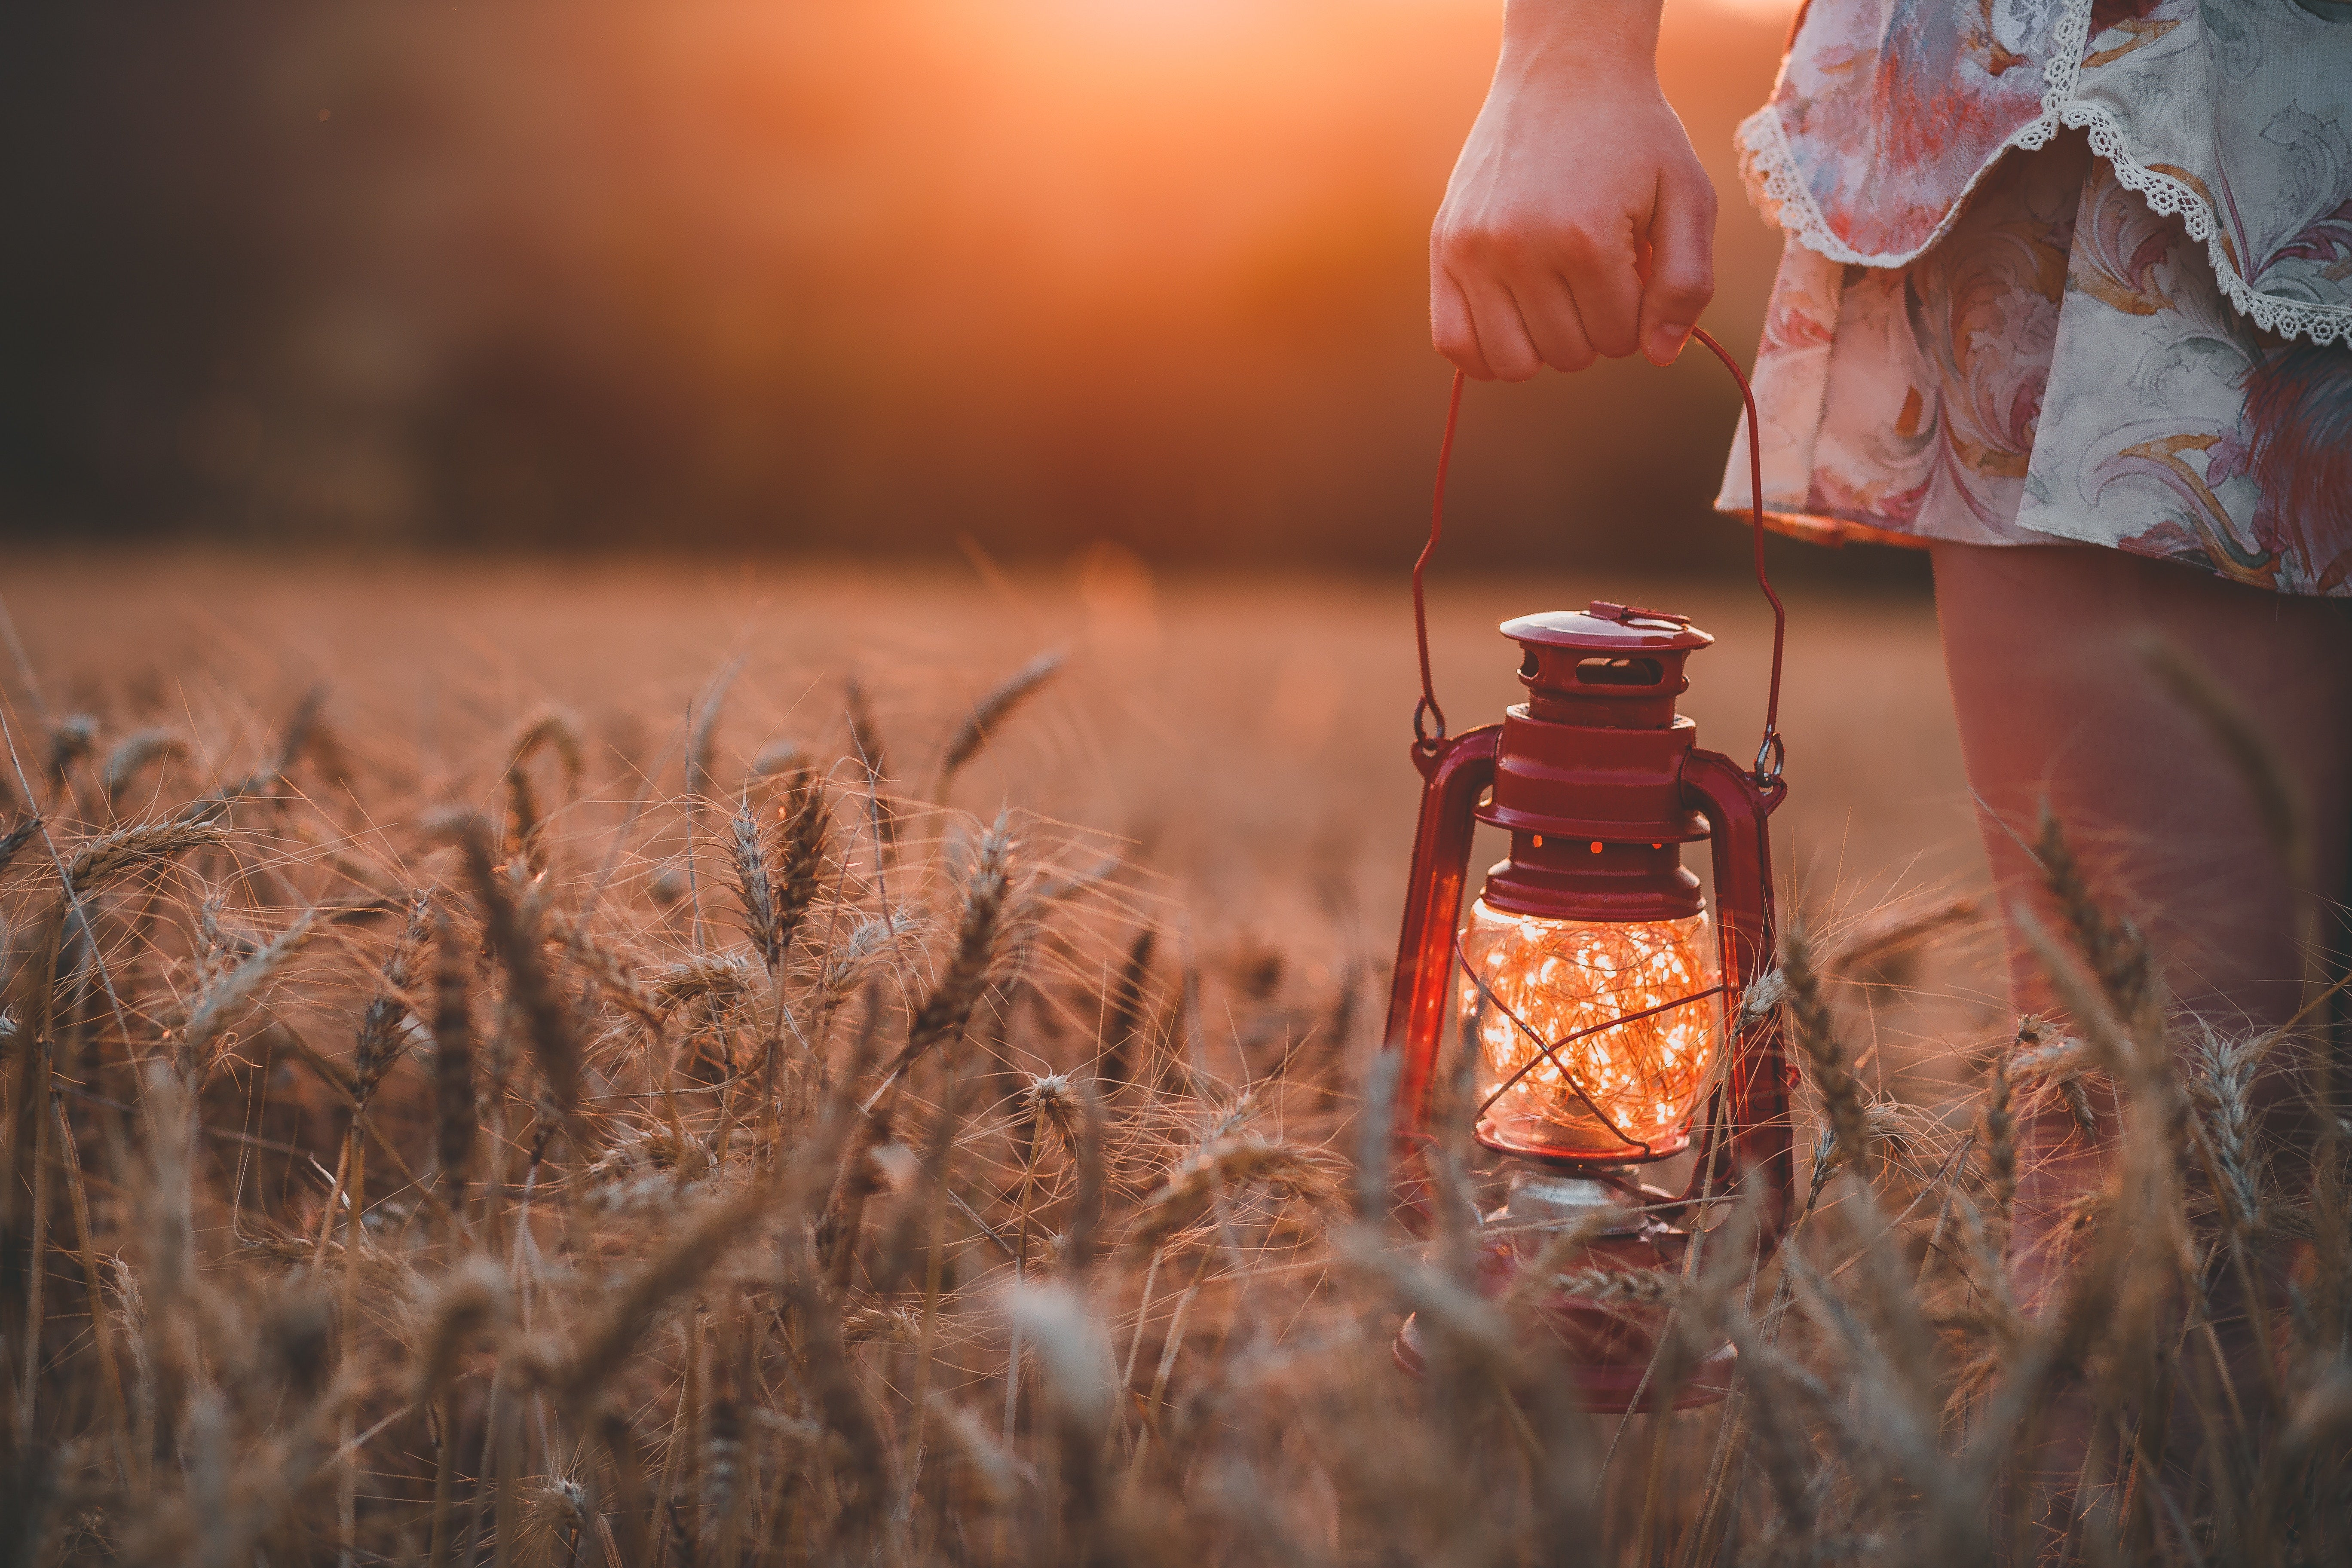 Girl holding a lantern in a field of wheat at sunset